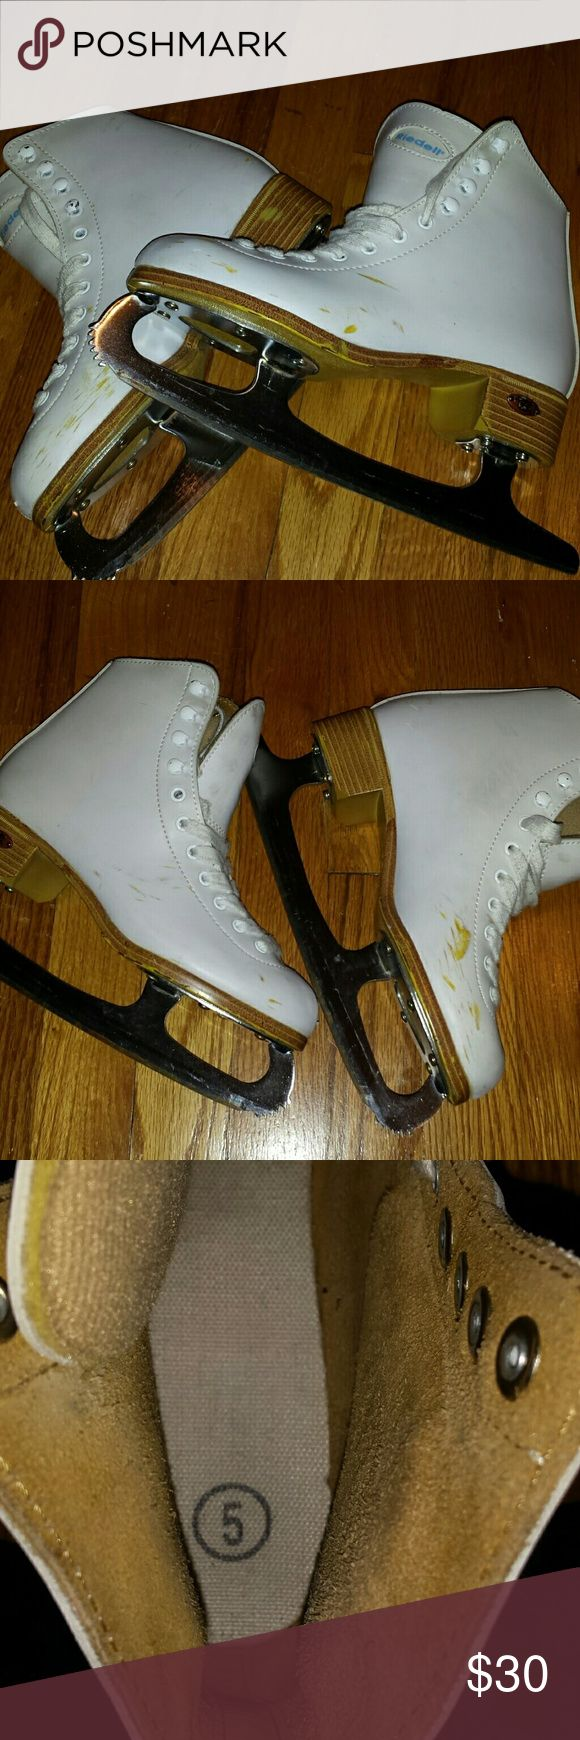 Riedell ice skates White Riedell ice skates. Size 5. Minor wear at on sole. Skuffs on uppers. See pics. Sturdy, solid leather upper. Cusioned tougue. Blades probably could use sharpening. Great condition. Riedell Shoes